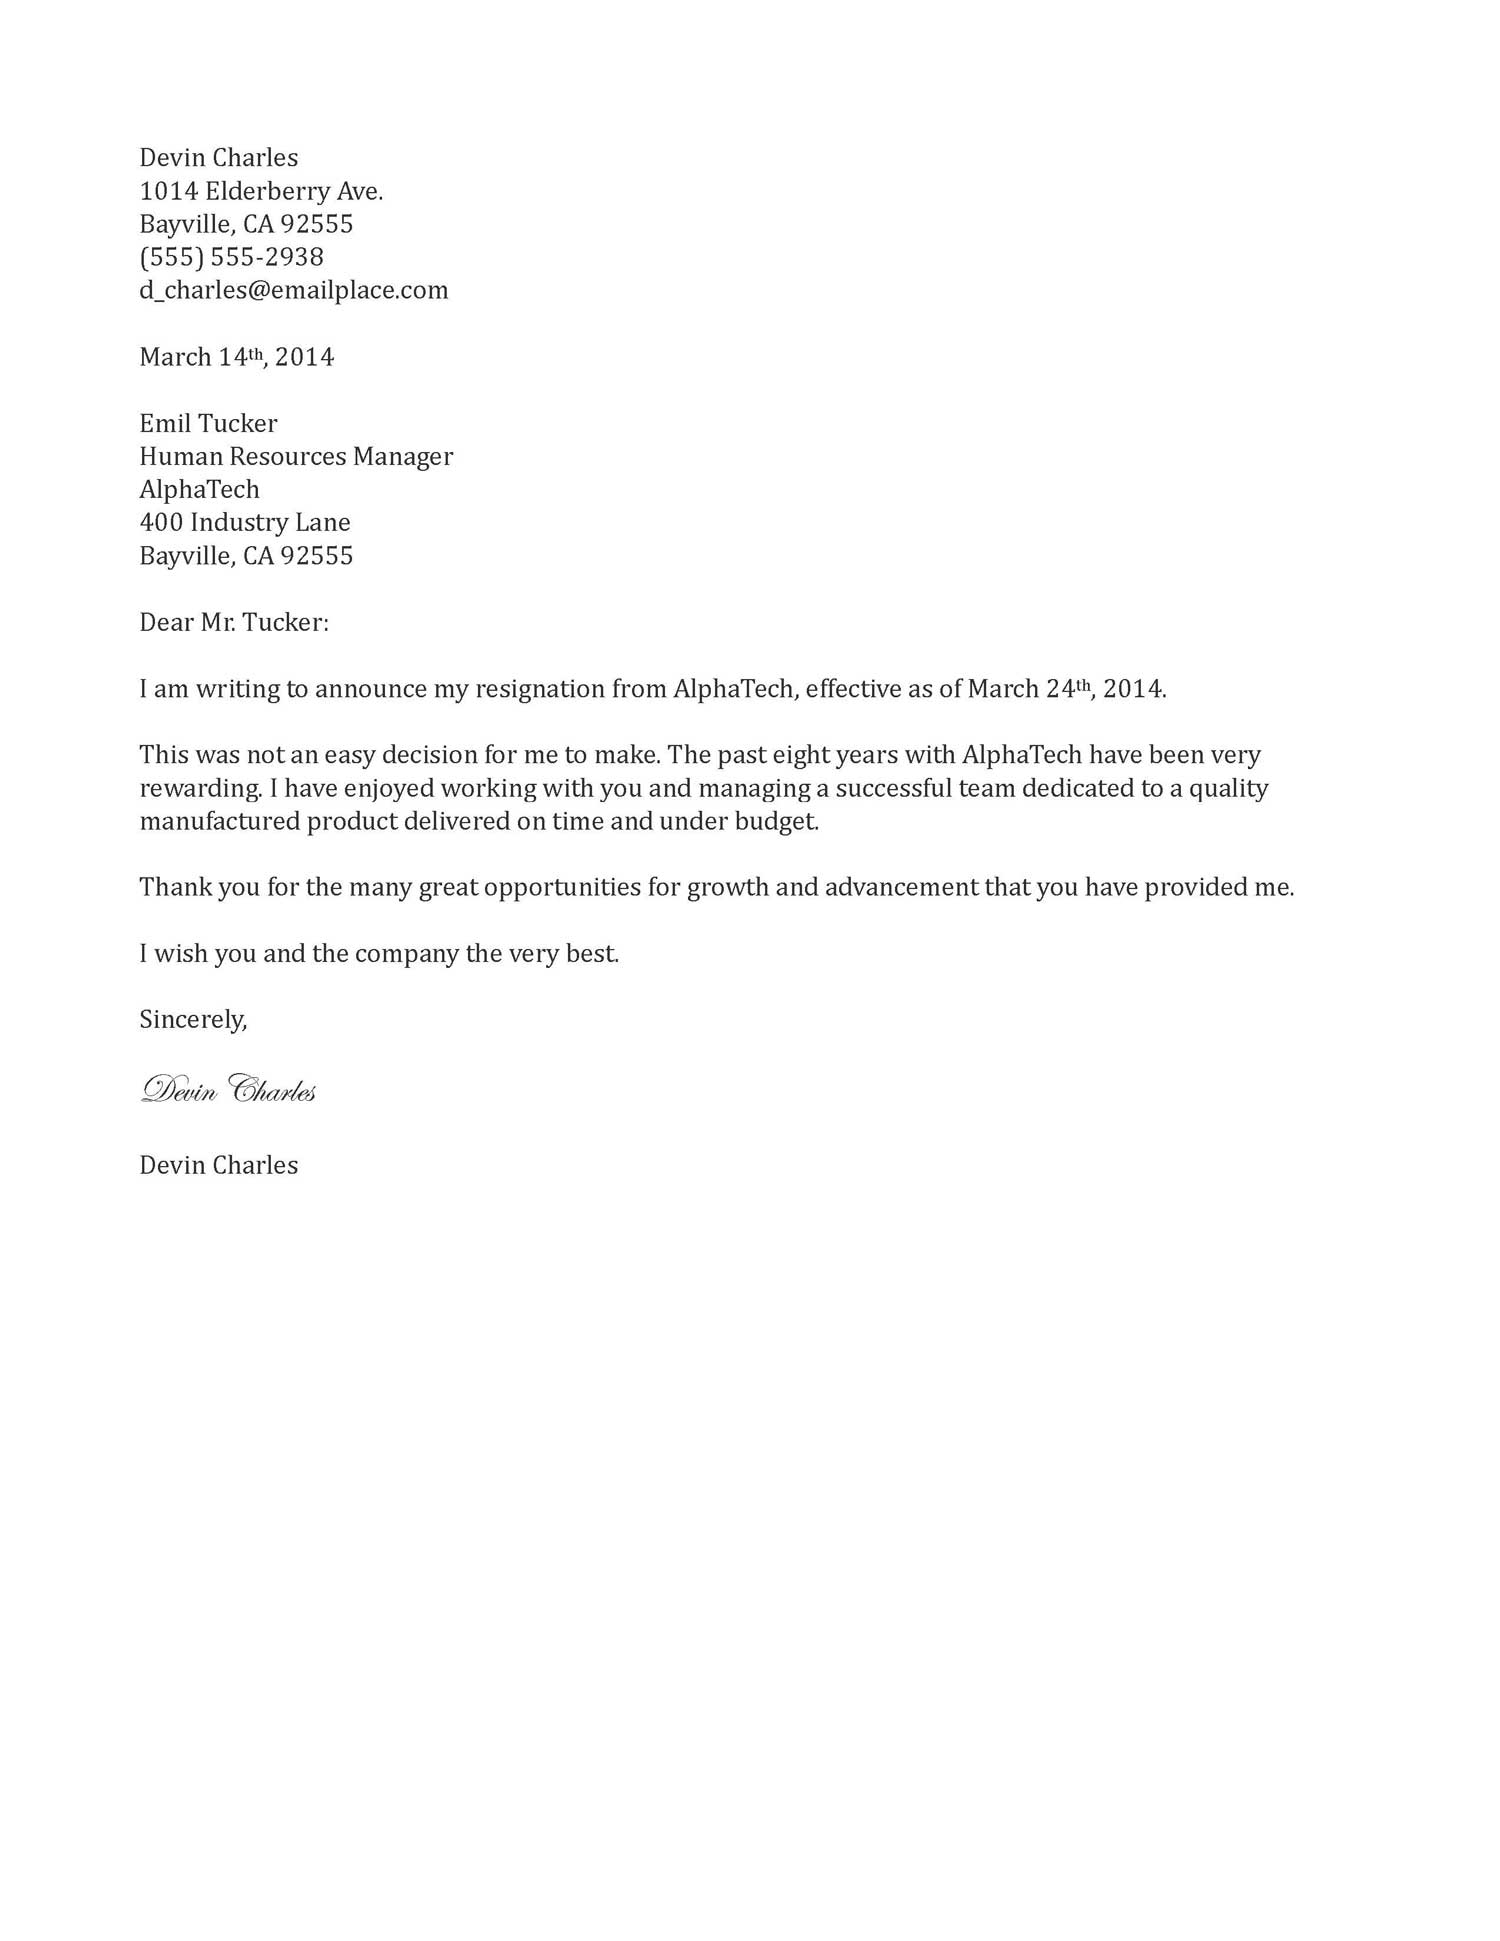 Resignation Letter Sample 2 Weeks Notice Under Fontanacountryinn Com